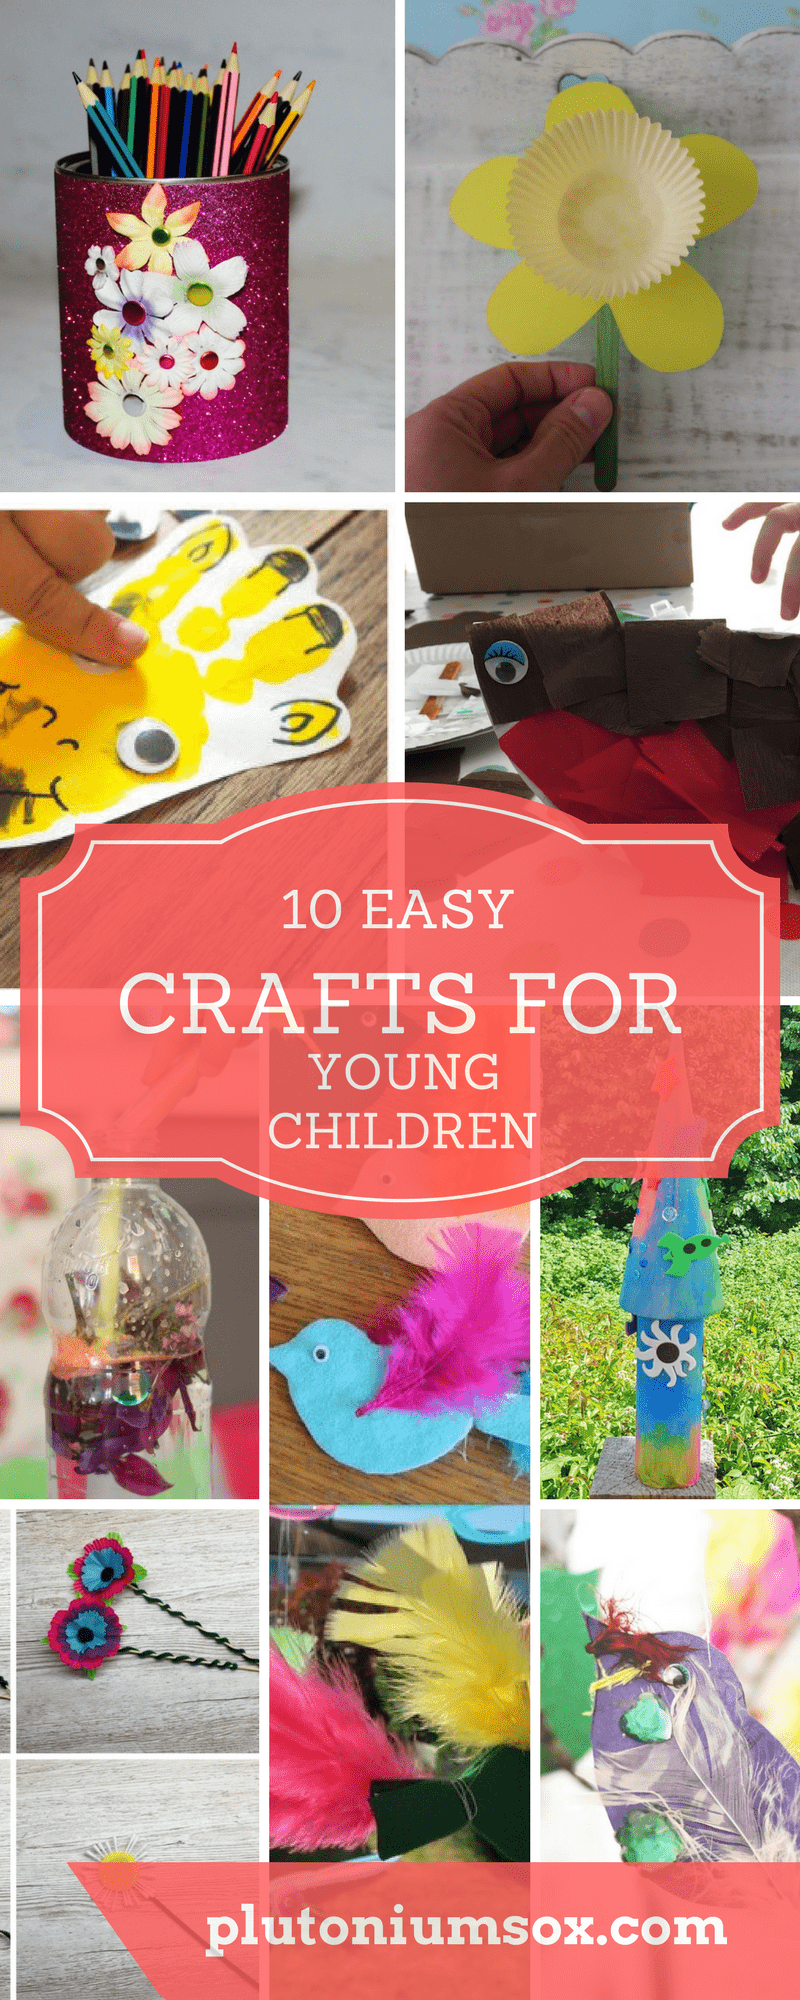 Crafts for preschoolers | young children will love these 10 simple crafts. Whether you are crafting with babies, toddlers or primary school age children, you will find something that is easy enough or challenging enough for them to enjoy making. All these craft projects only need basic craft supplies.